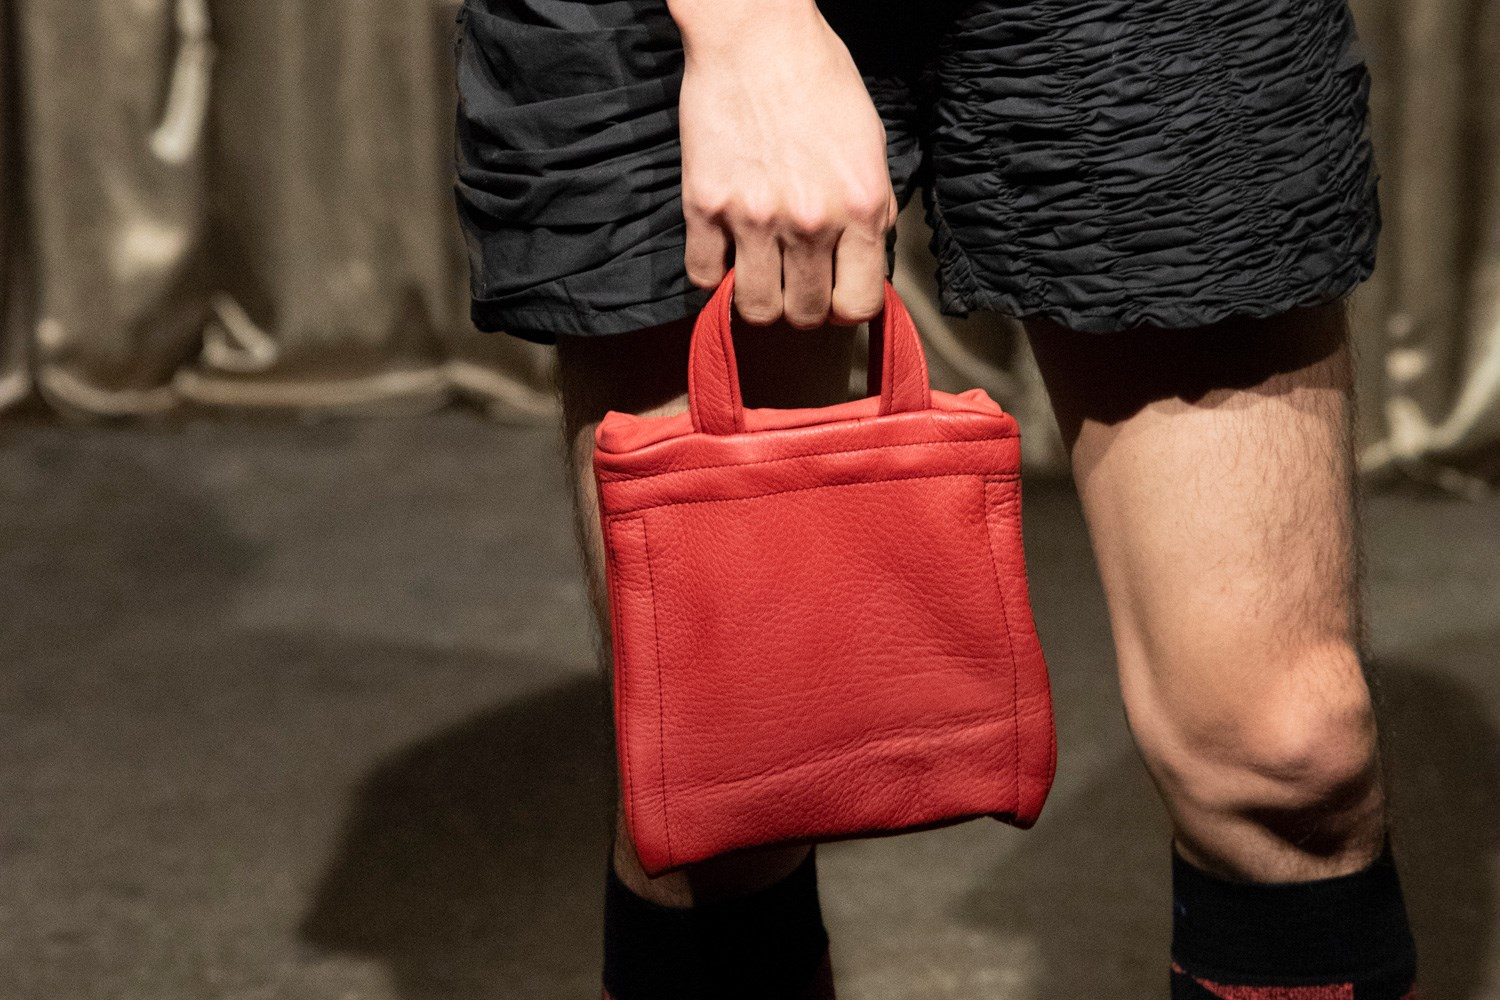 Bianca Saunders Fall 2020 Men's Fashion Show Accessory Photos